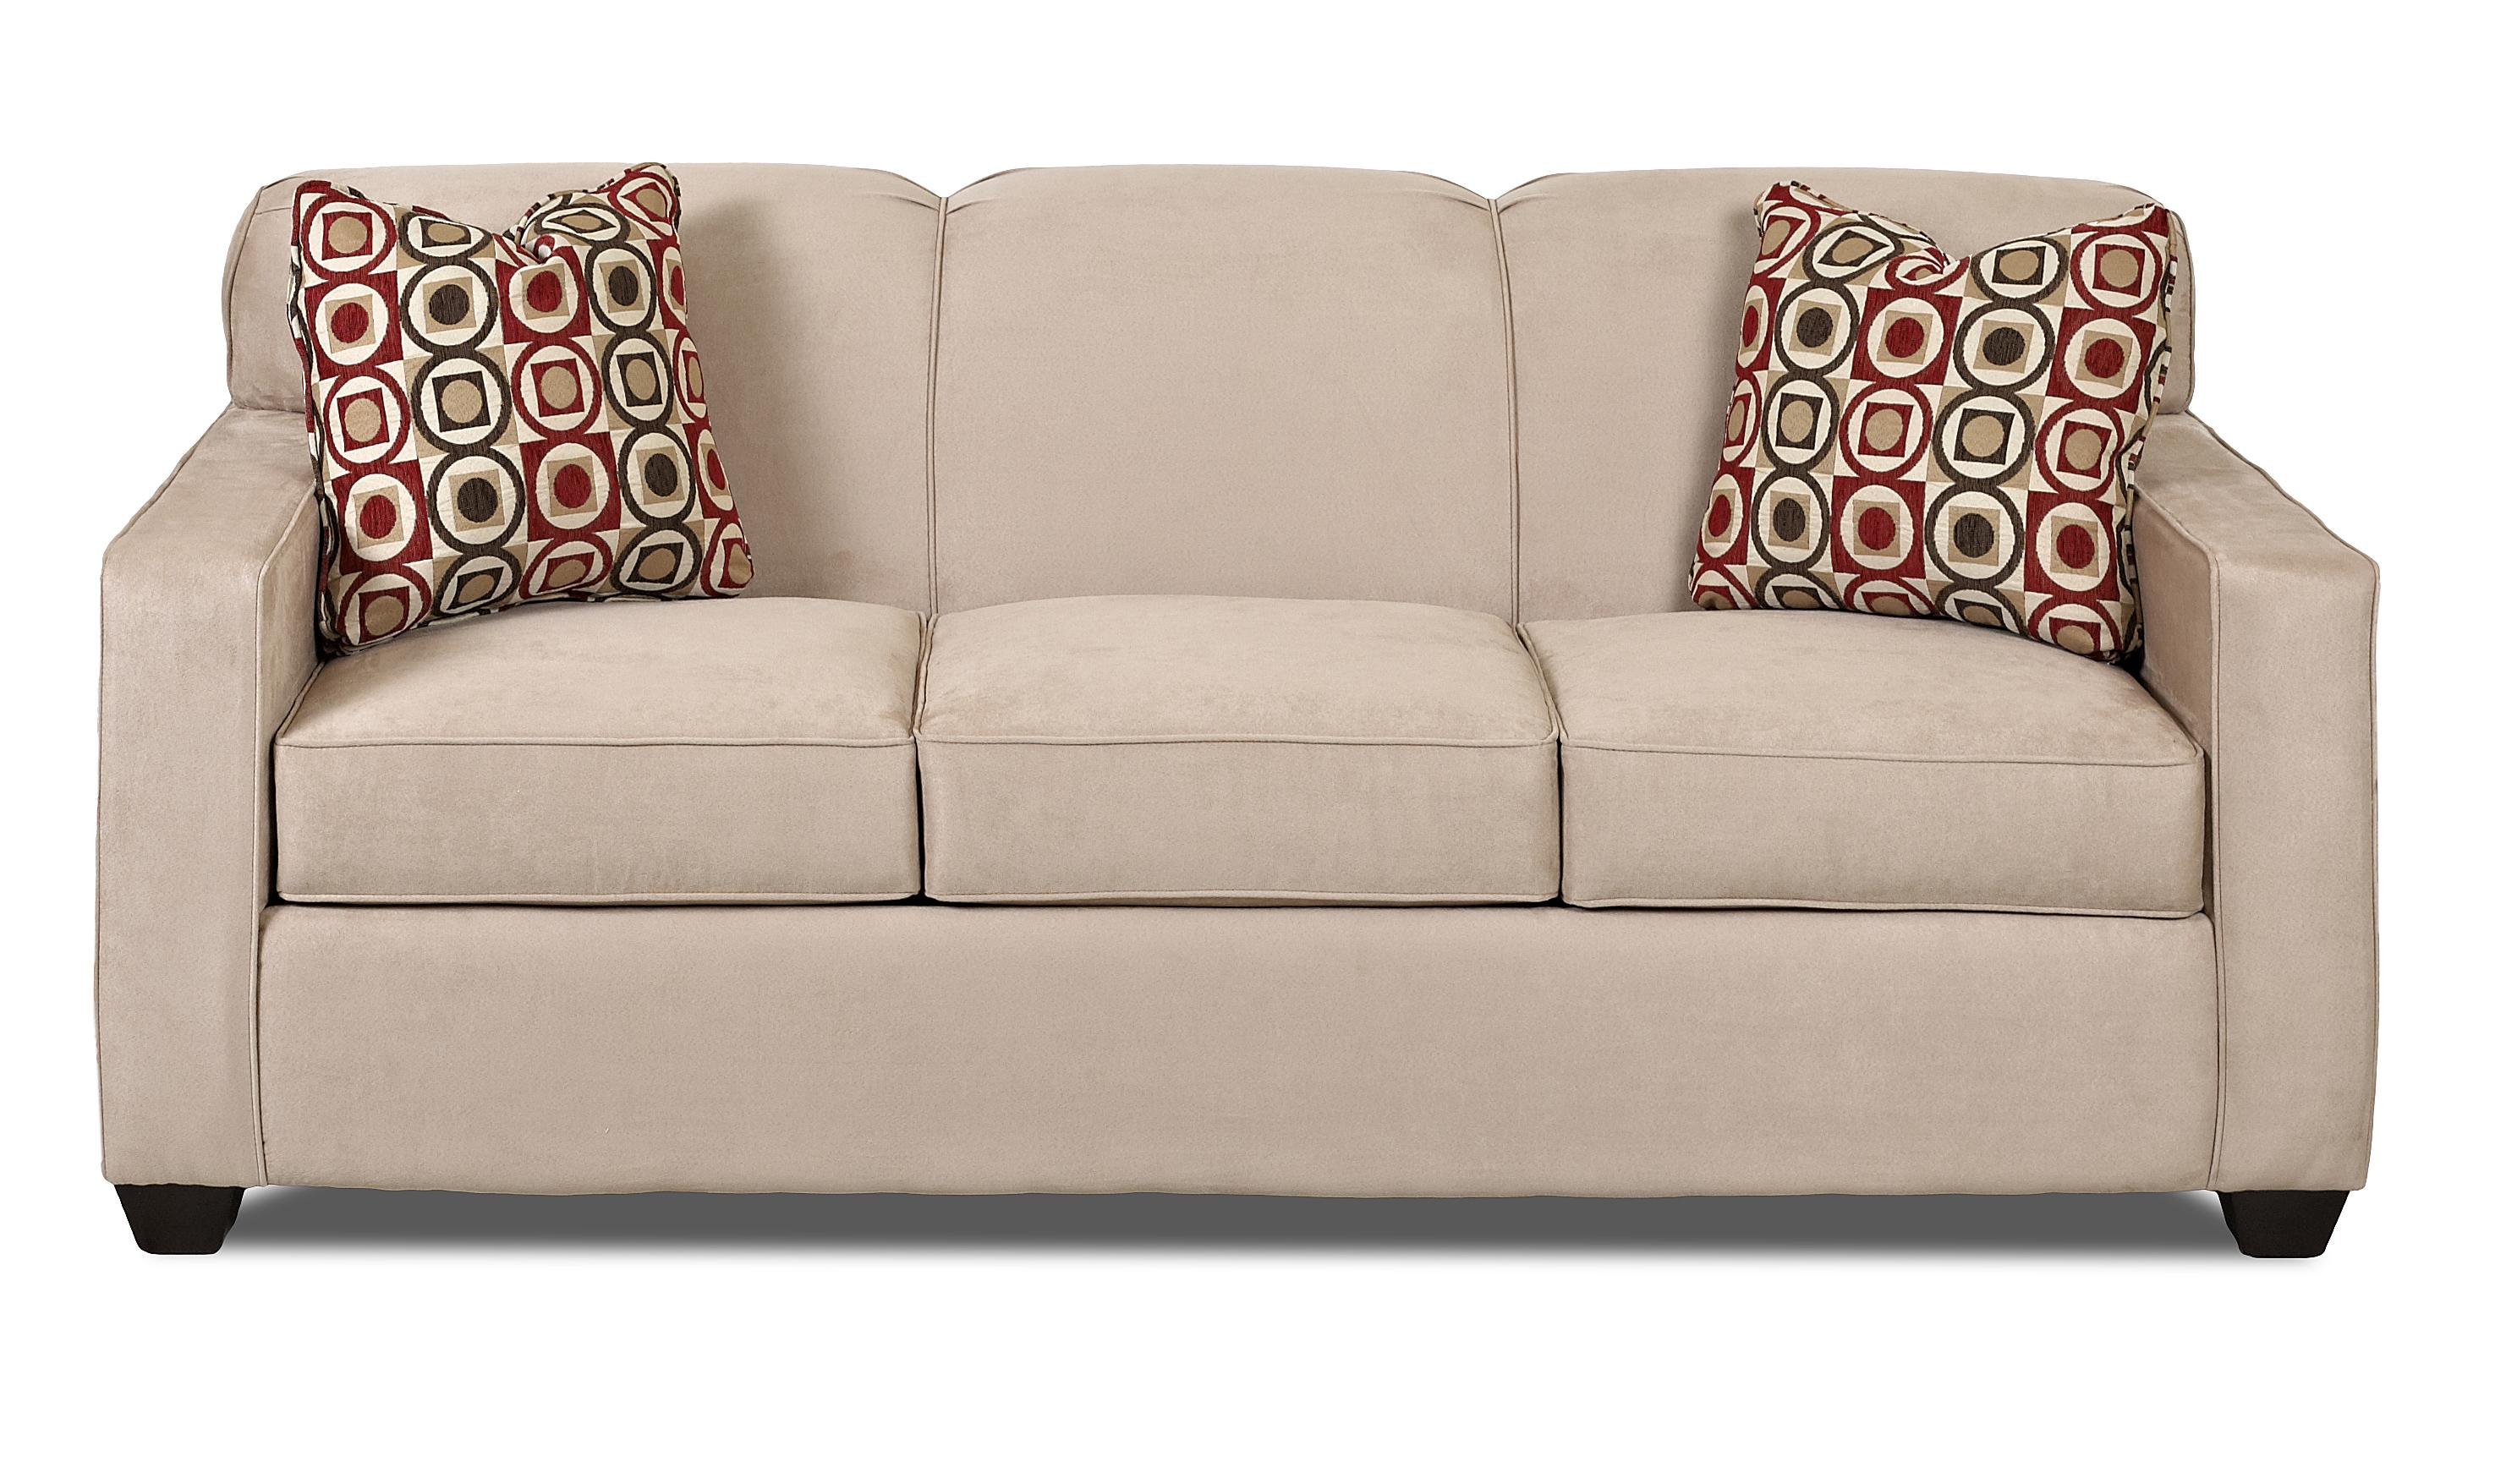 how to clean fabric sofa arms milano 4 seater set contemporary with tight back and track by